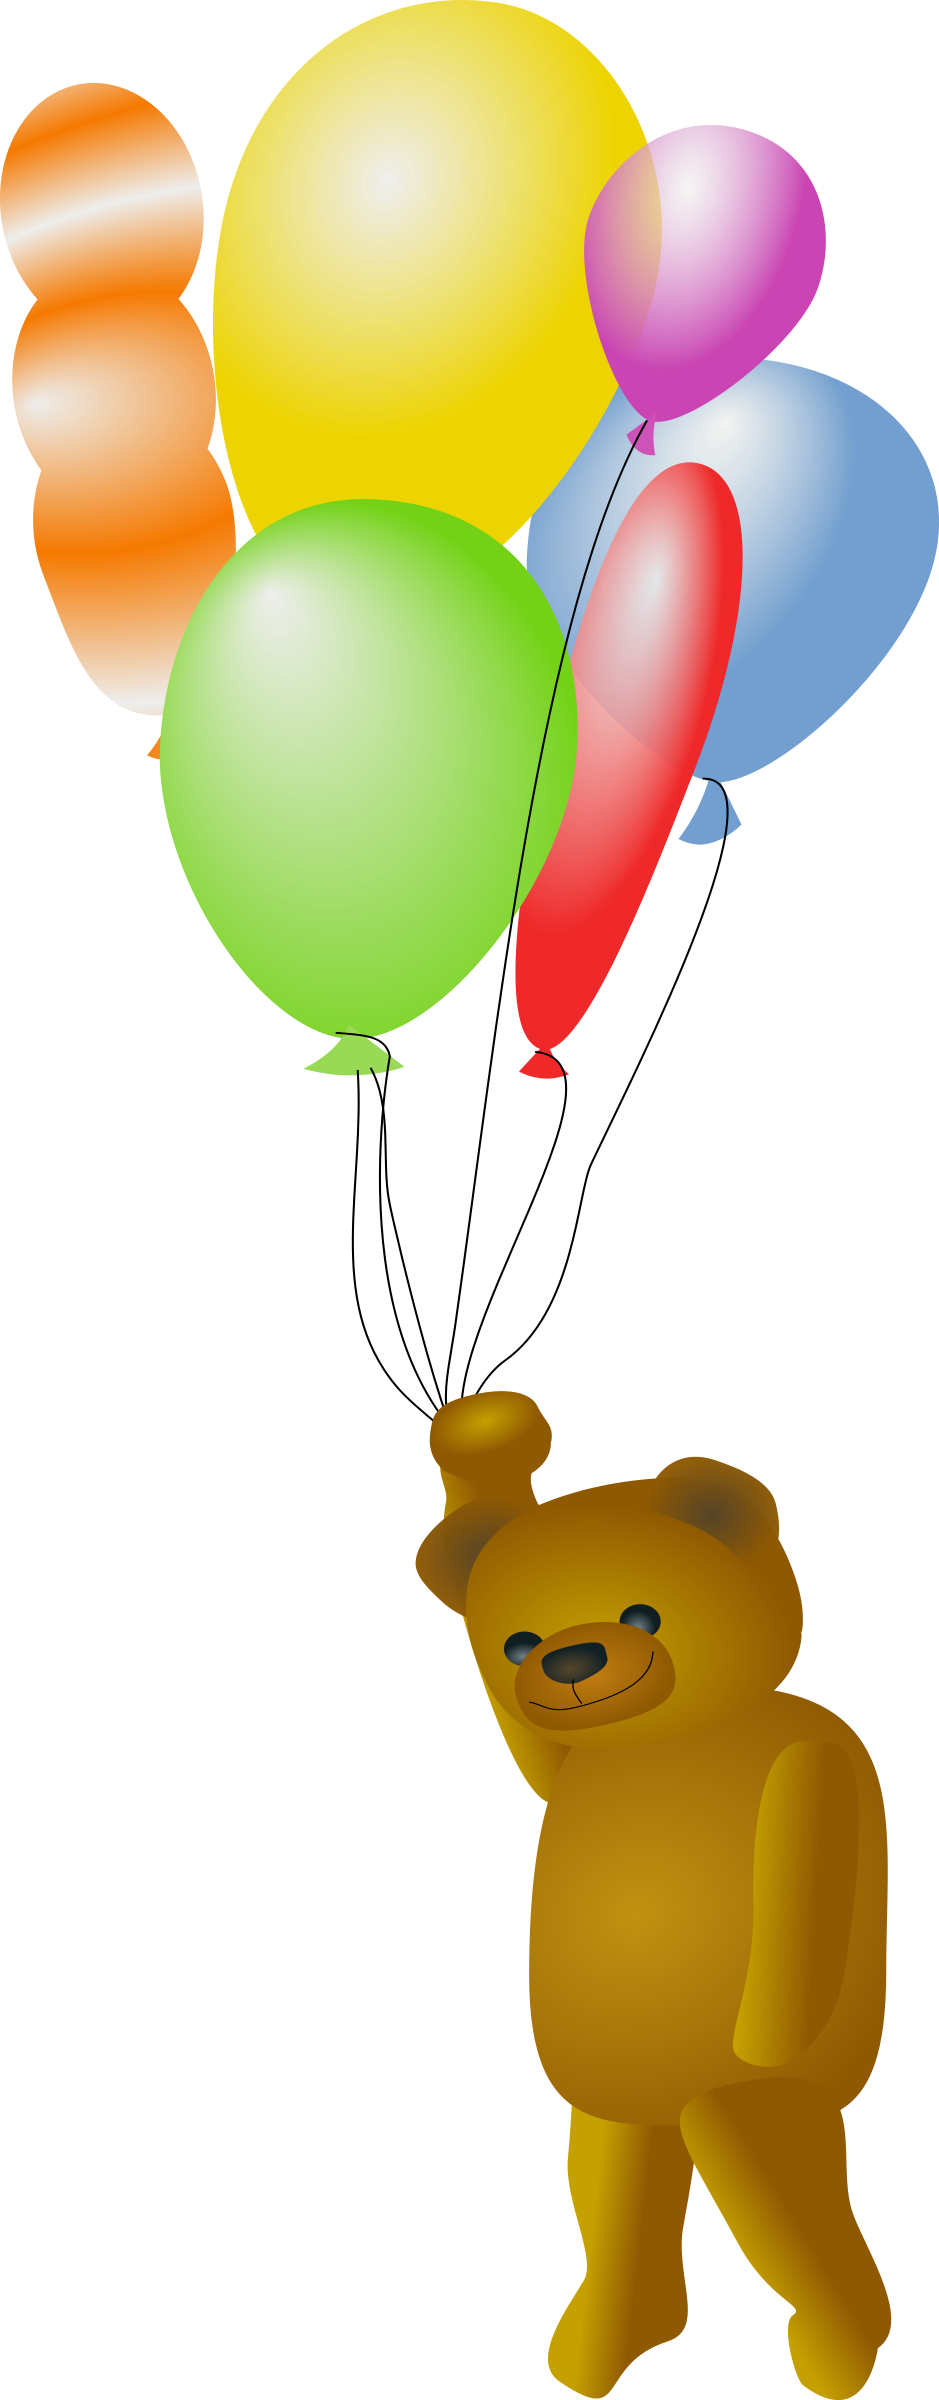 Teddy Bear with Balloons by OlKu